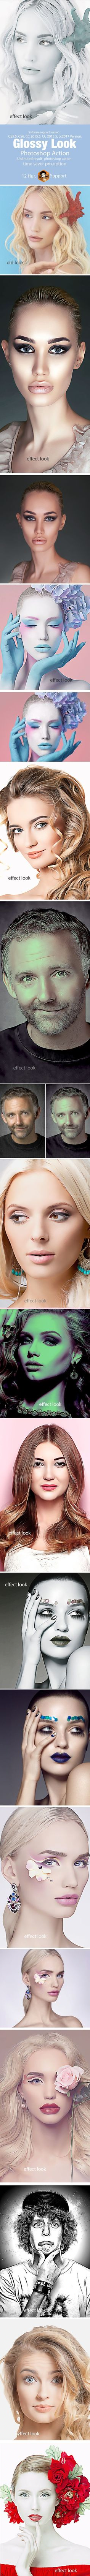 Glossy Look Action - Photo Effects Actions